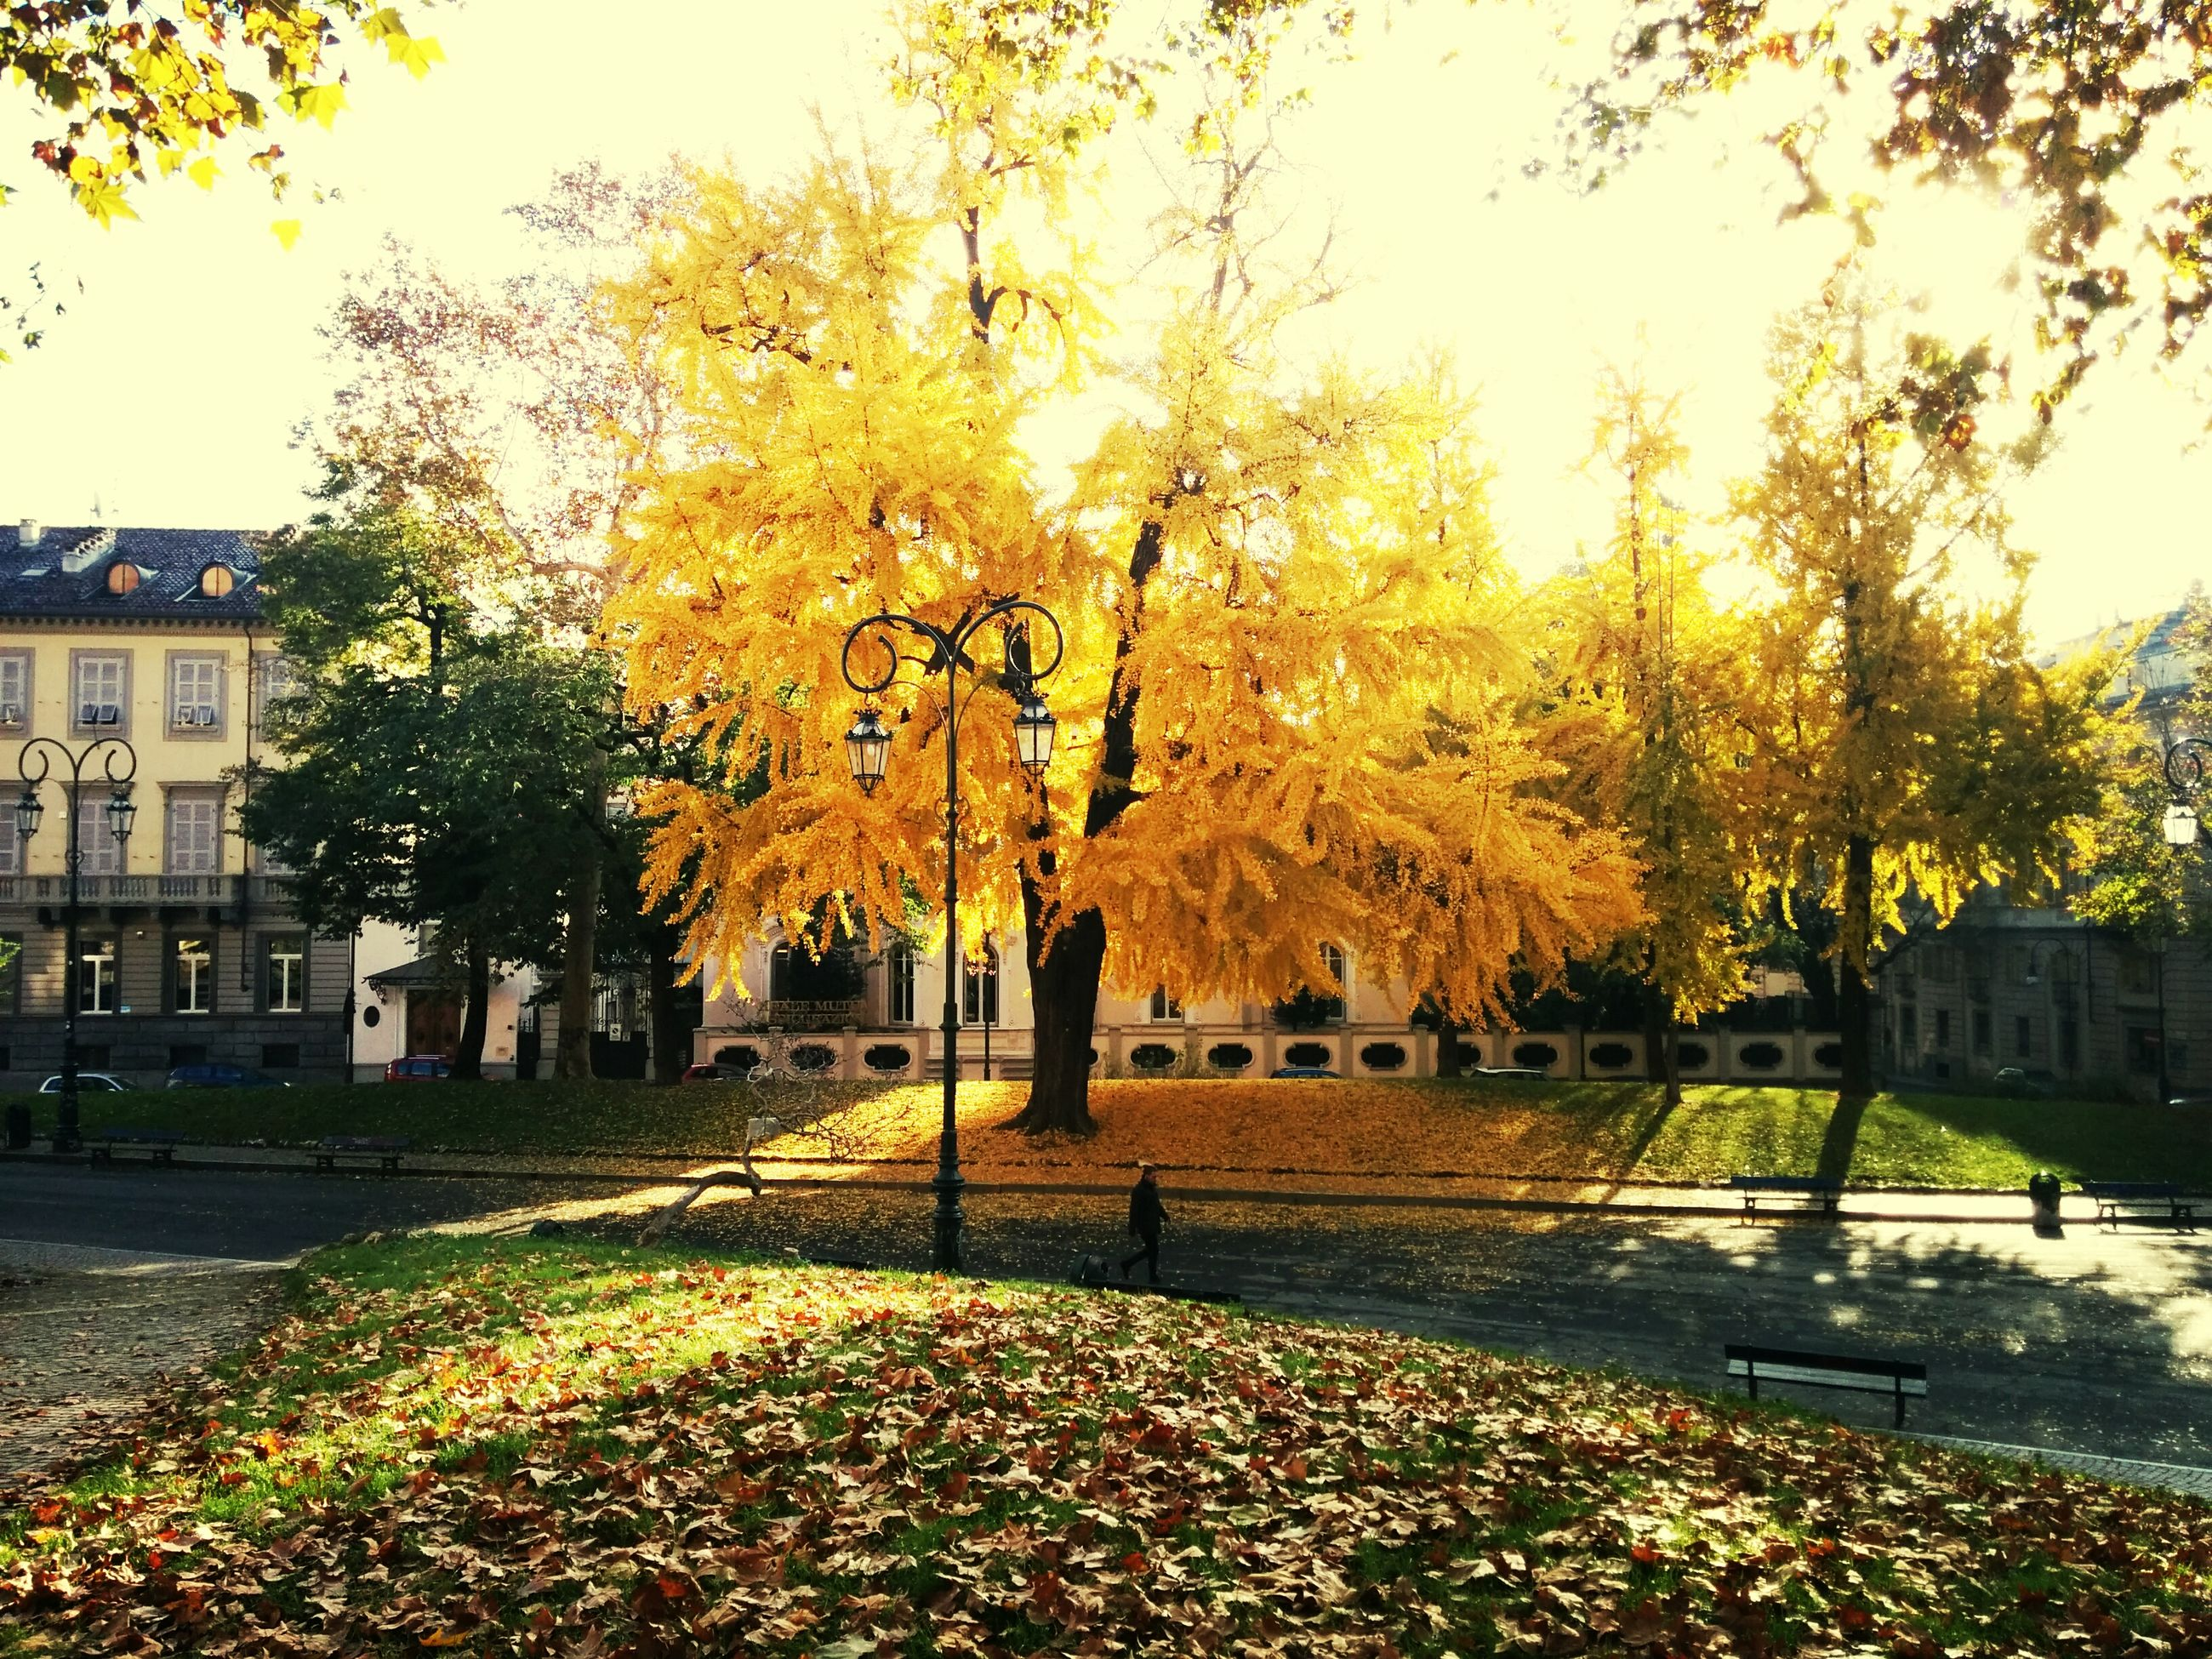 tree, autumn, change, season, yellow, built structure, building exterior, architecture, growth, leaf, nature, branch, park - man made space, orange color, tranquility, fallen, beauty in nature, outdoors, street, sunlight